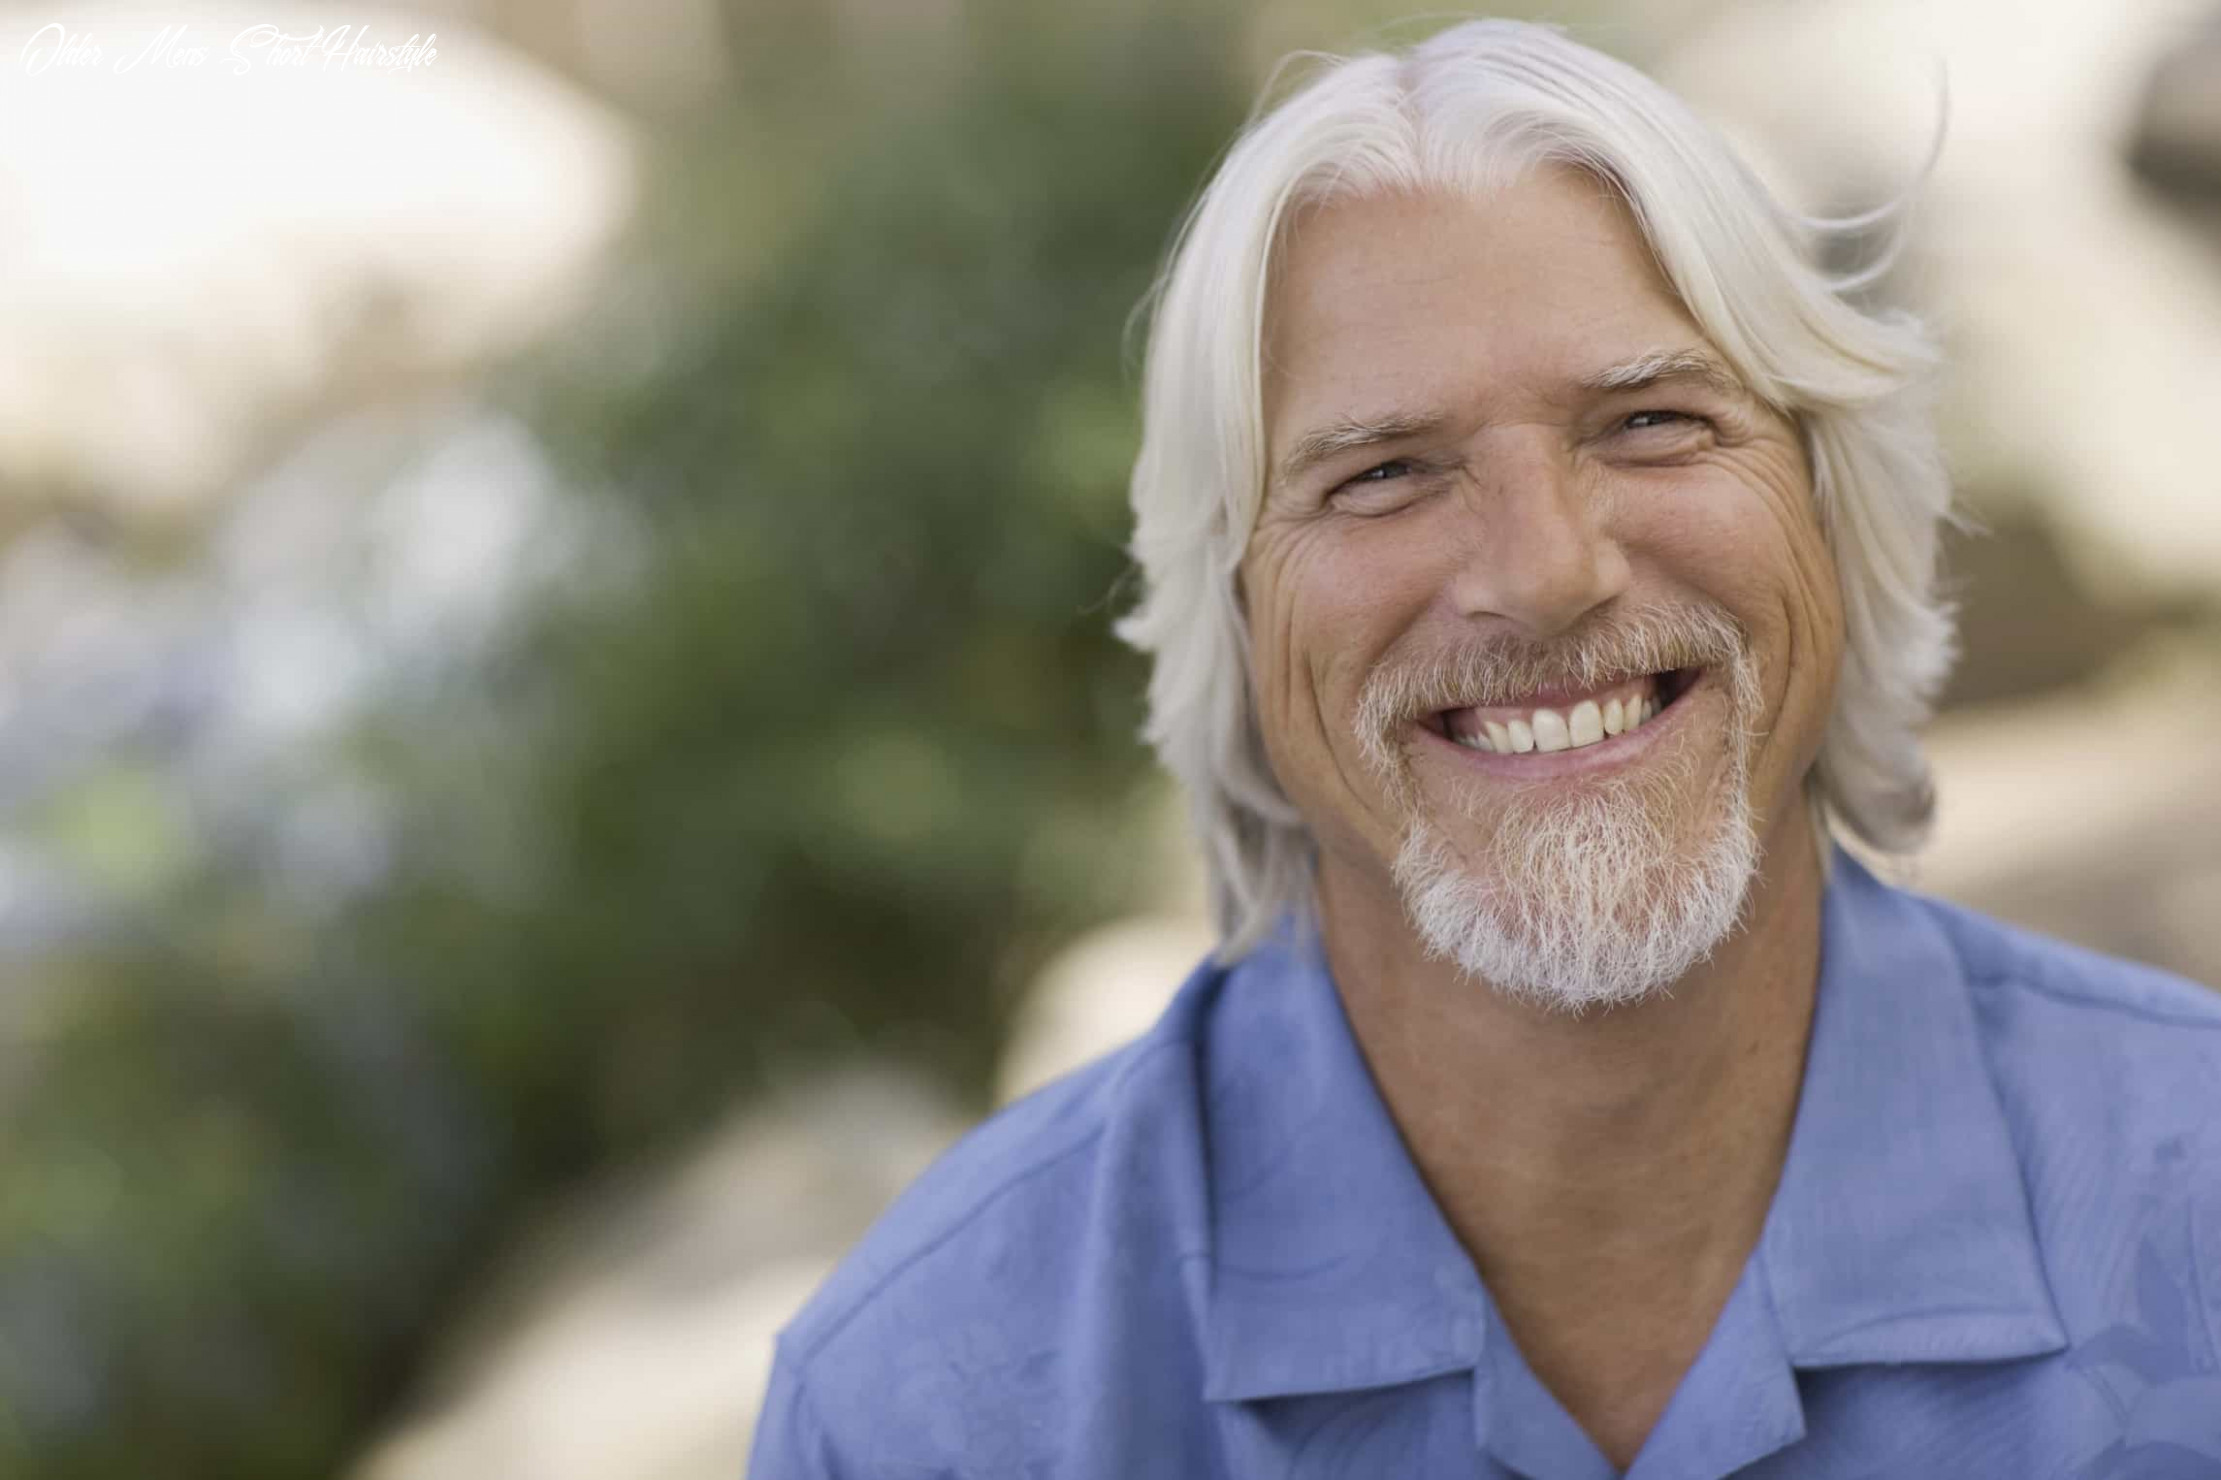 10+ Classy Older Men Hairstyles to Rejuvenate Youth (10 Trends)